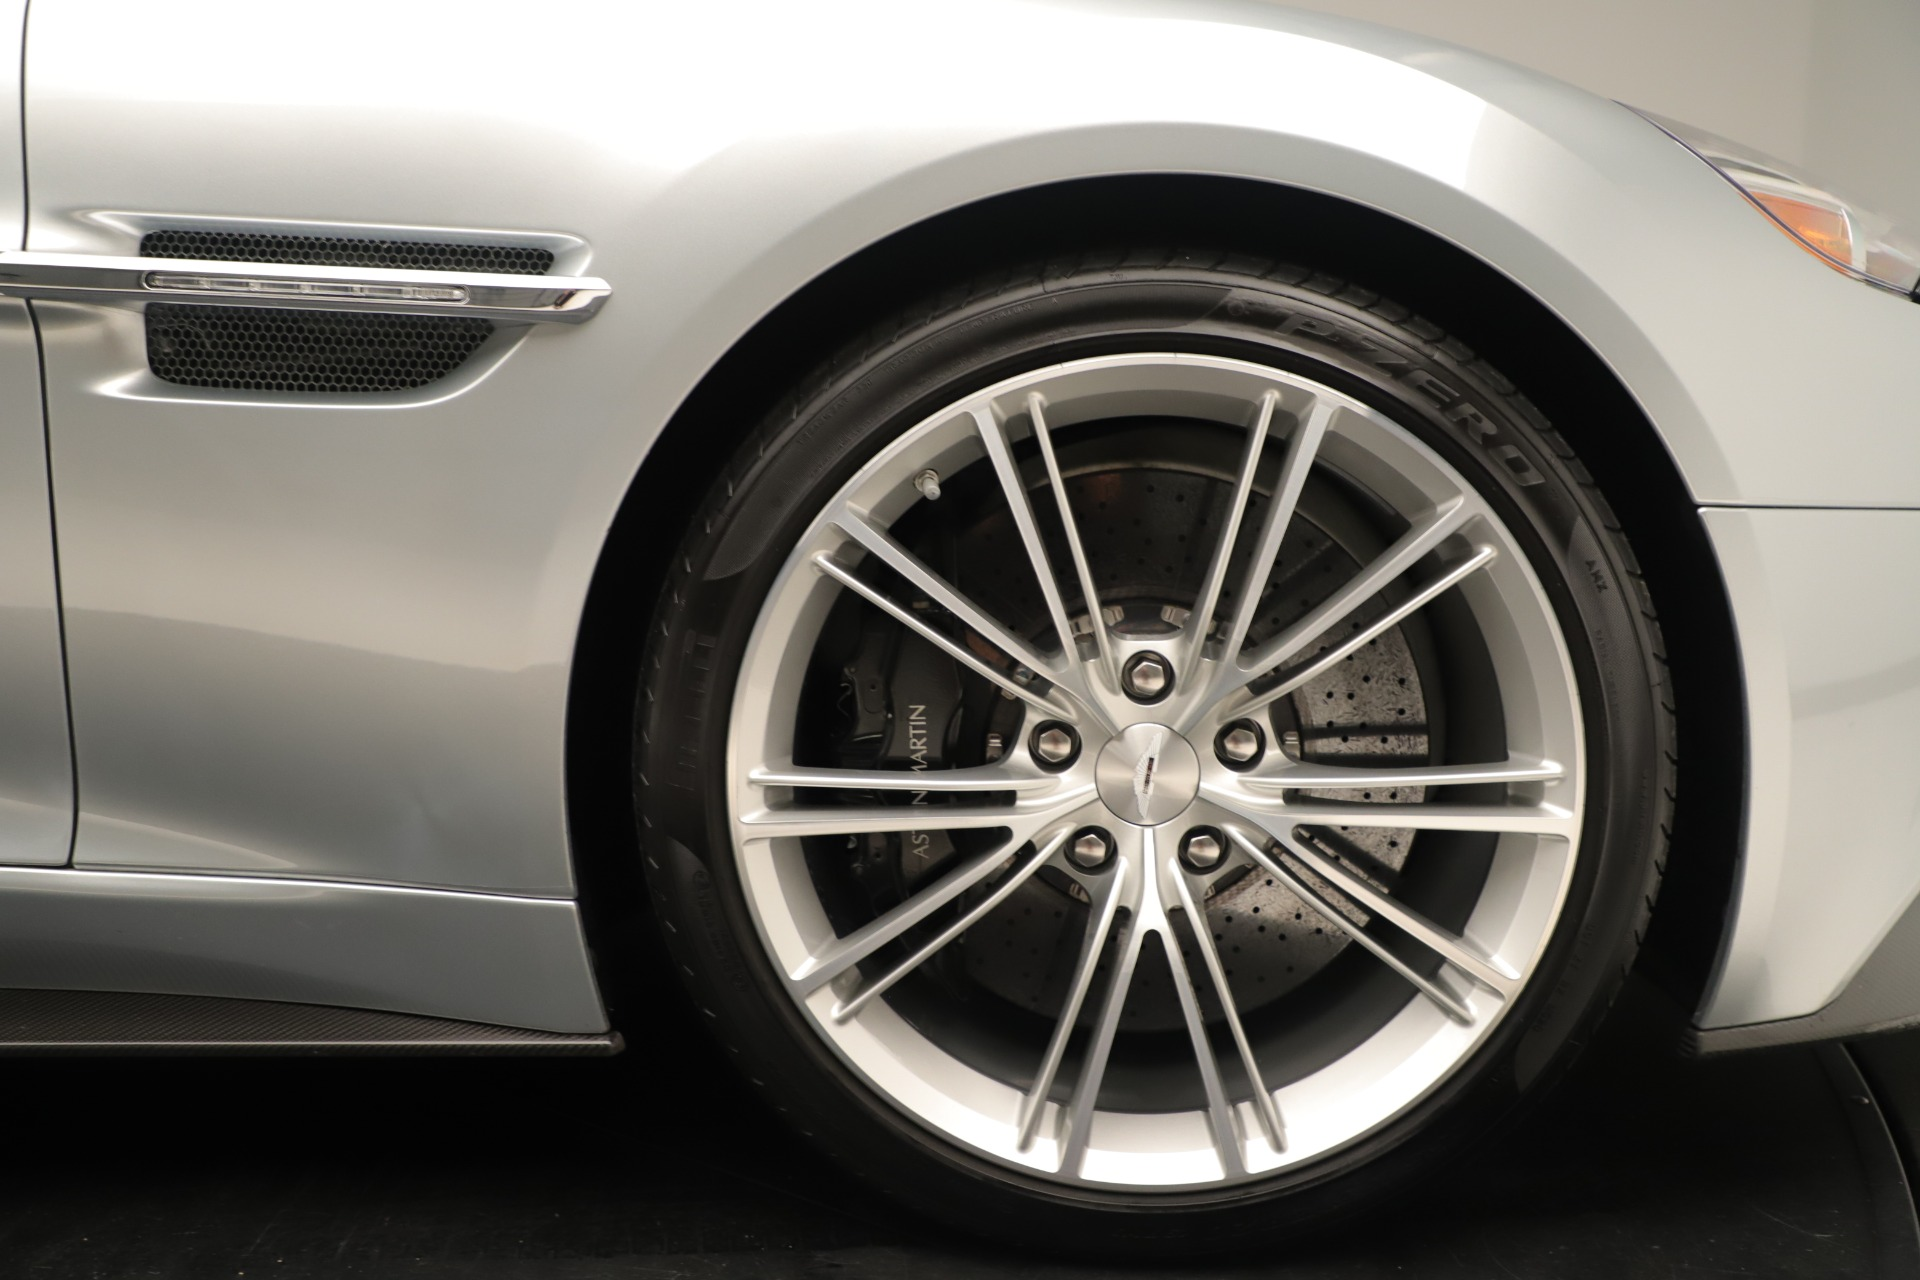 Used 2014 Aston Martin Vanquish Coupe For Sale In Westport, CT 3445_p19